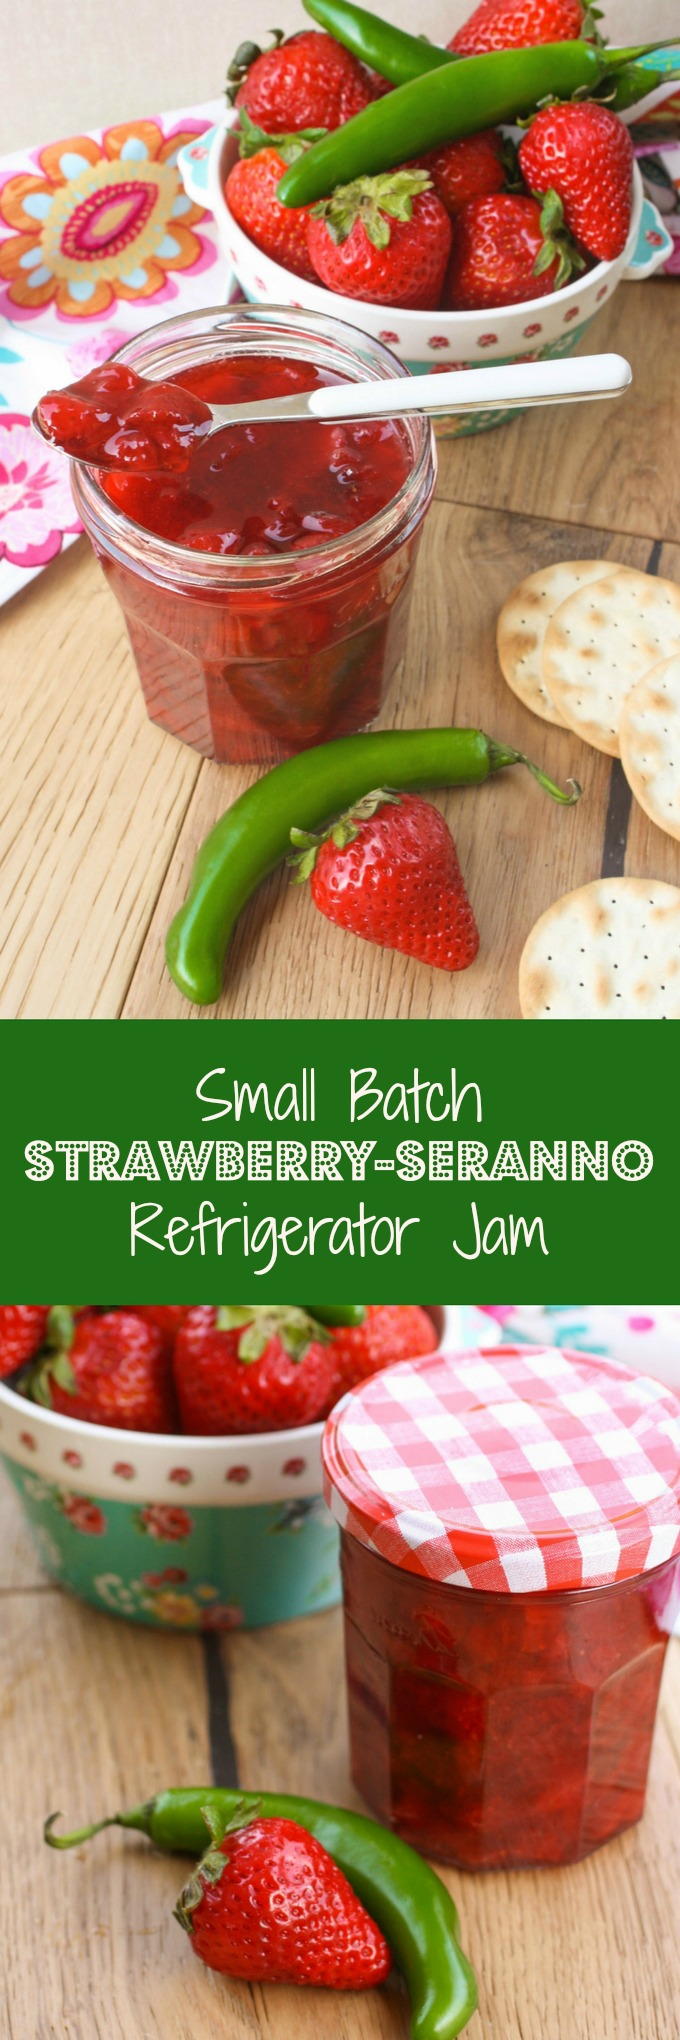 Small Batch Strawberry-Serrano Refrigerator Jam is a wonderful, seasonal treat. You'll love the flavors!